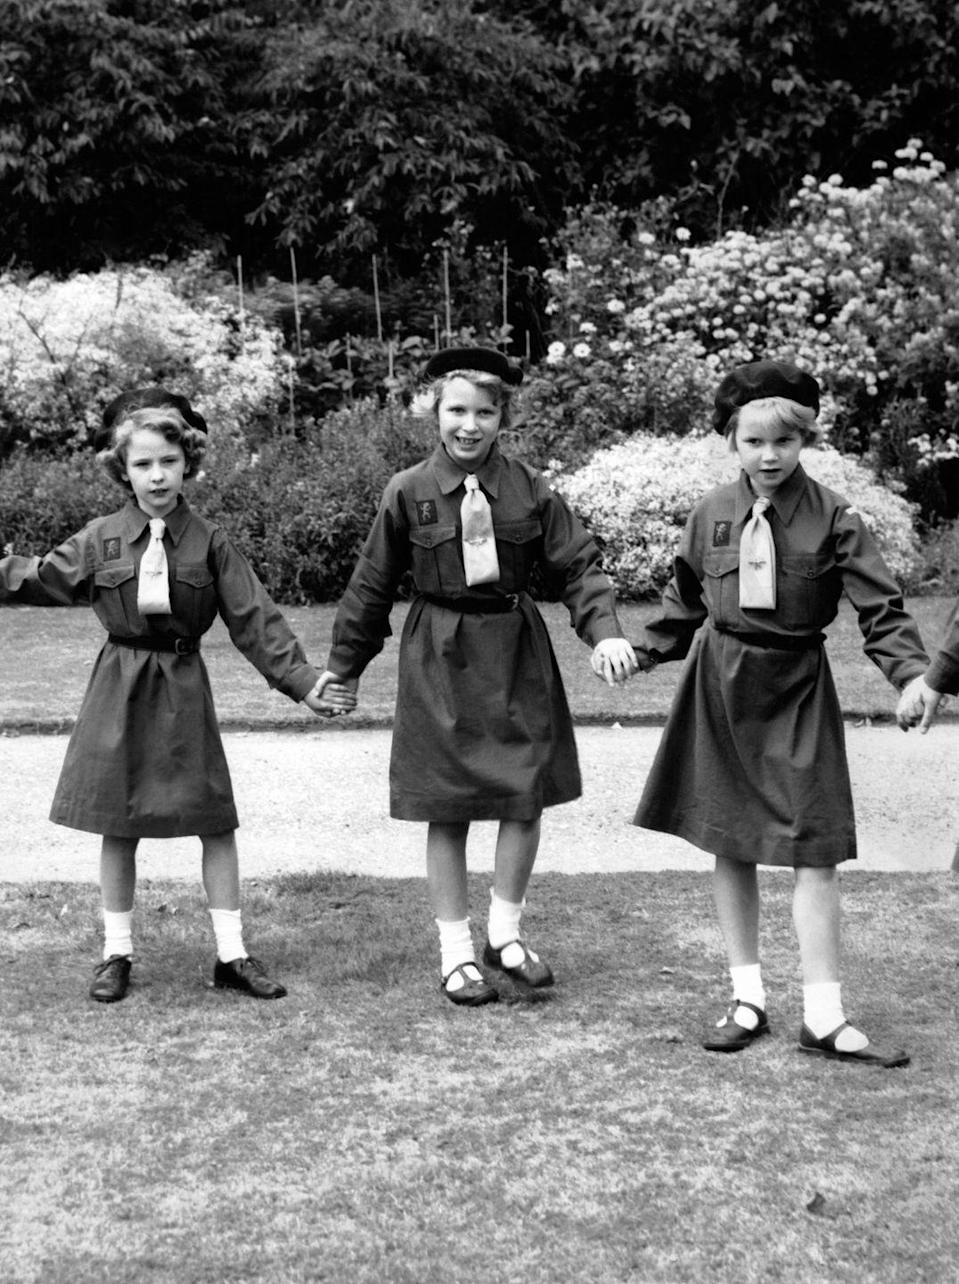 <p>Princess Anne and two fellow Brownies pose for a photo in their uniforms on the grounds of Buckingham Palace.</p>